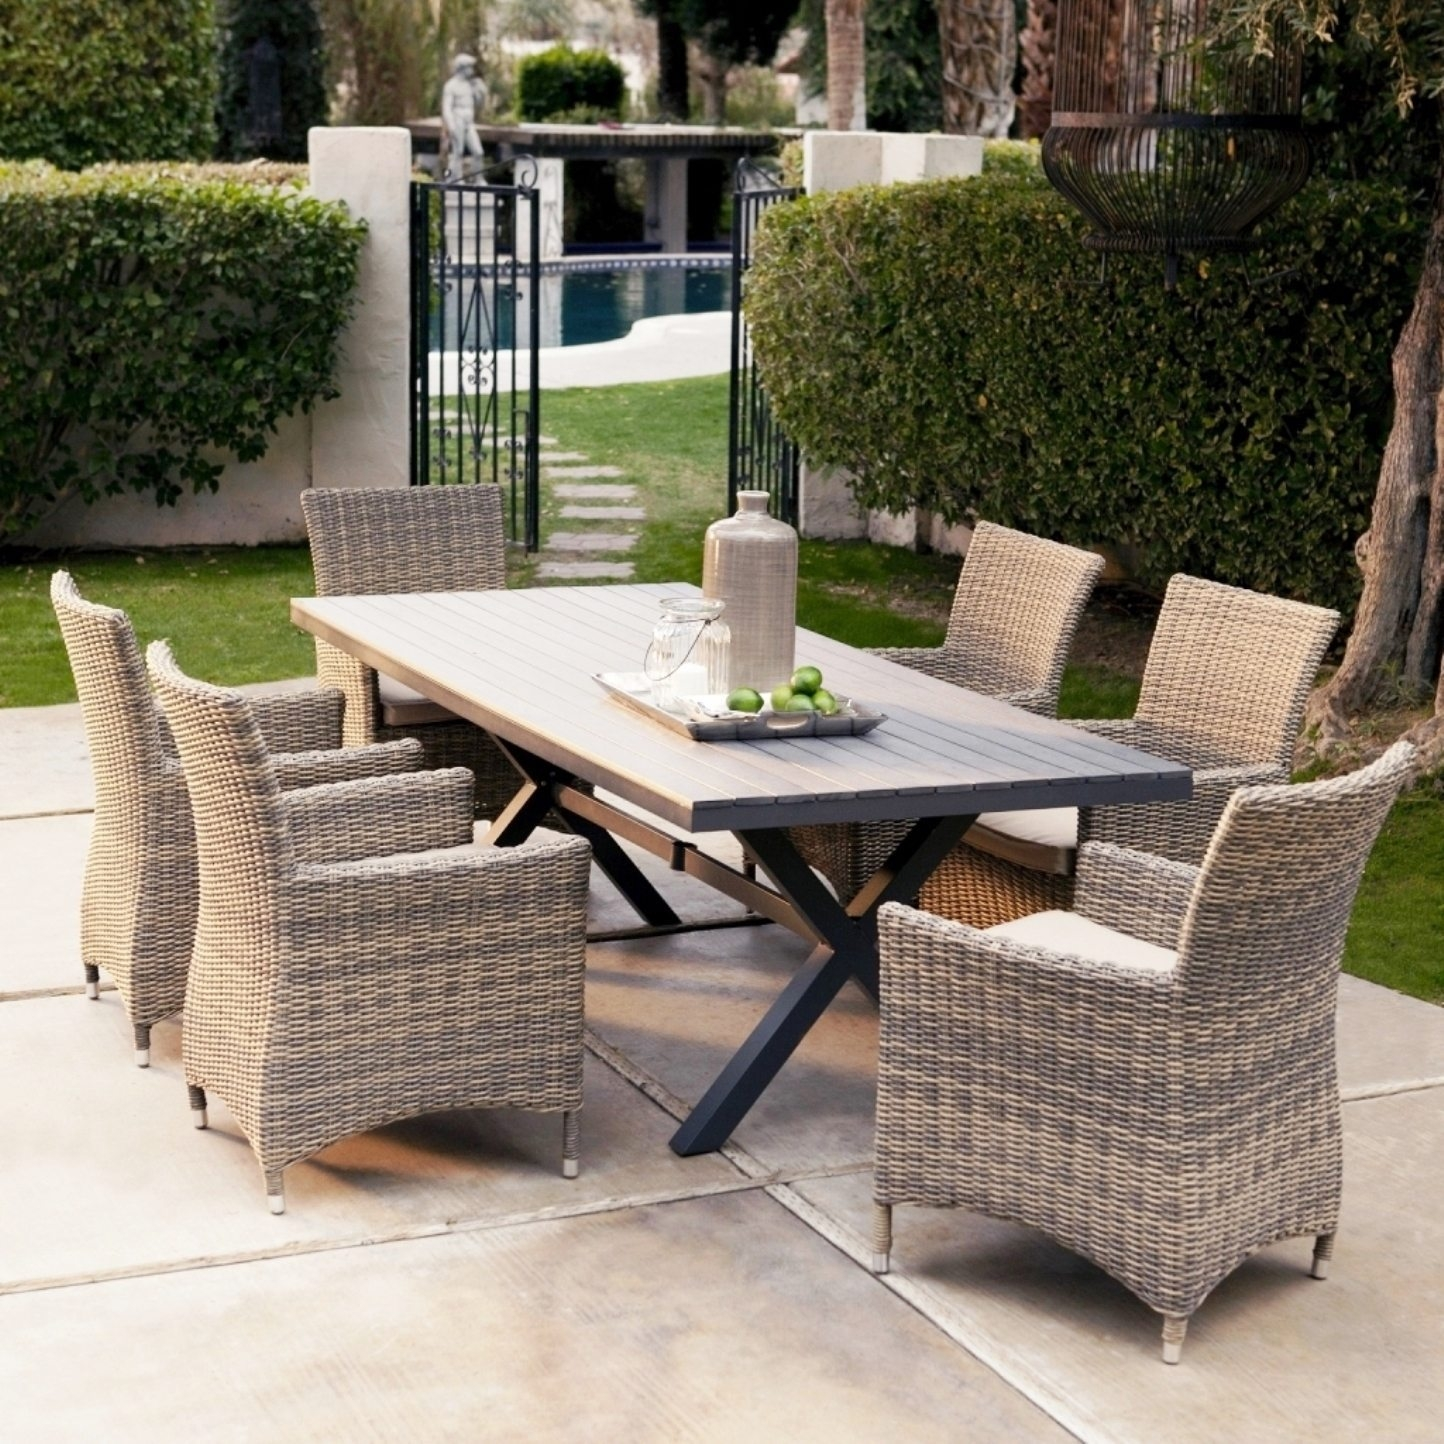 Patio Furniture Refinishing Fort Lauderdale: Lovable Patio Furniture Fort Lauderdale Patio Furniture